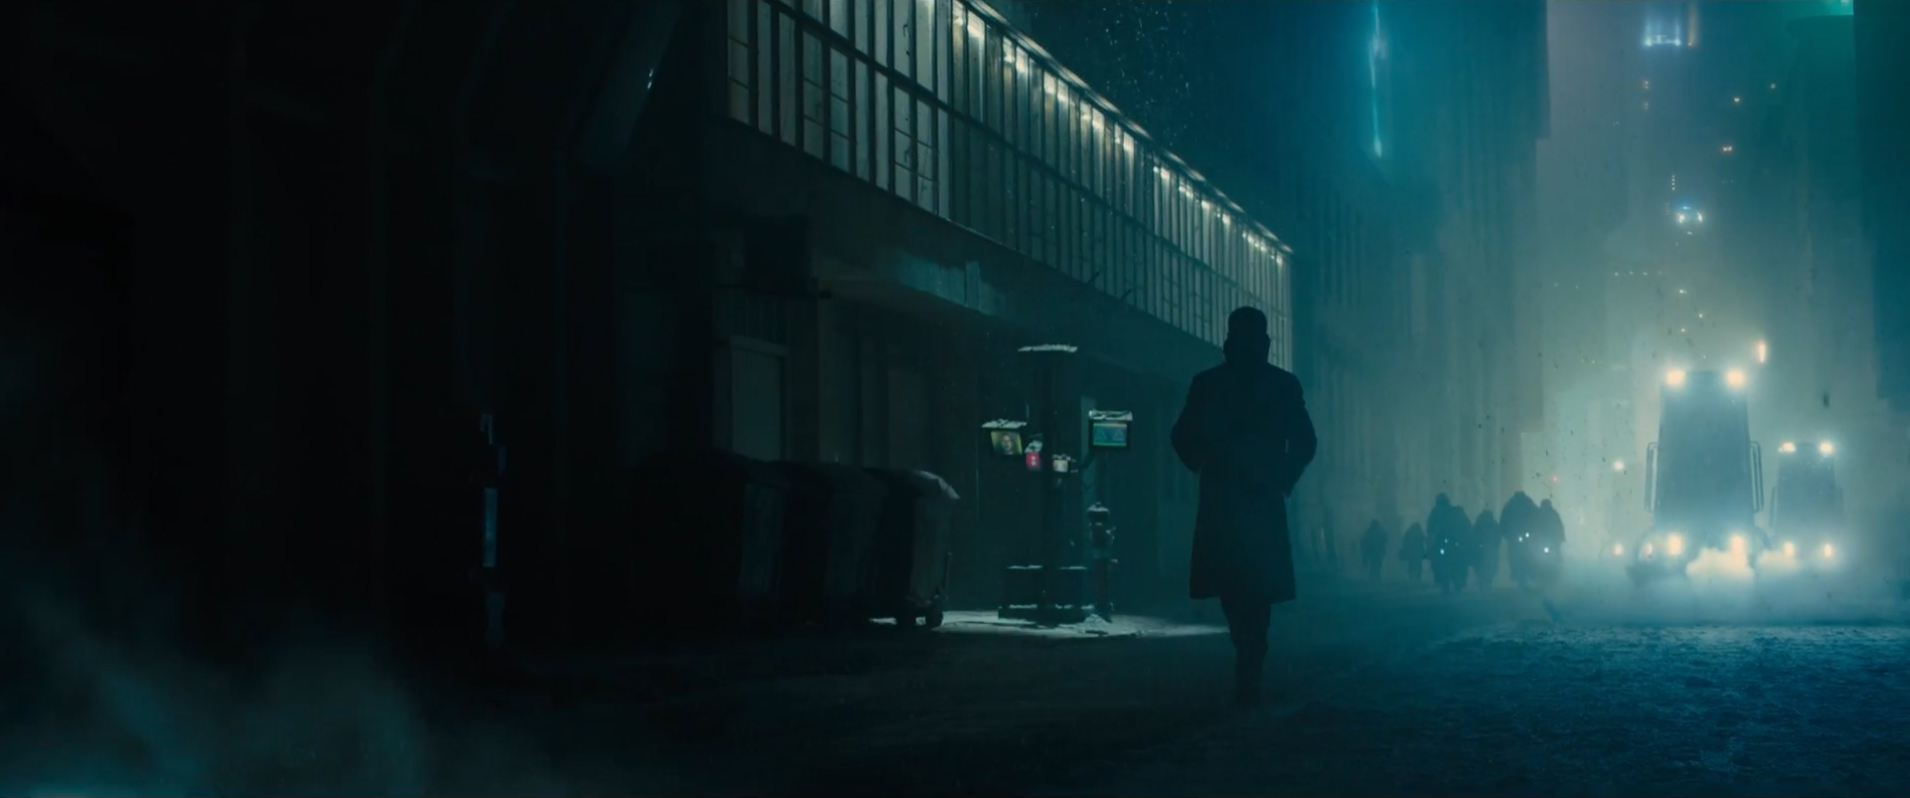 blade runner 2049 wallpapers 29 wallpapers � adorable